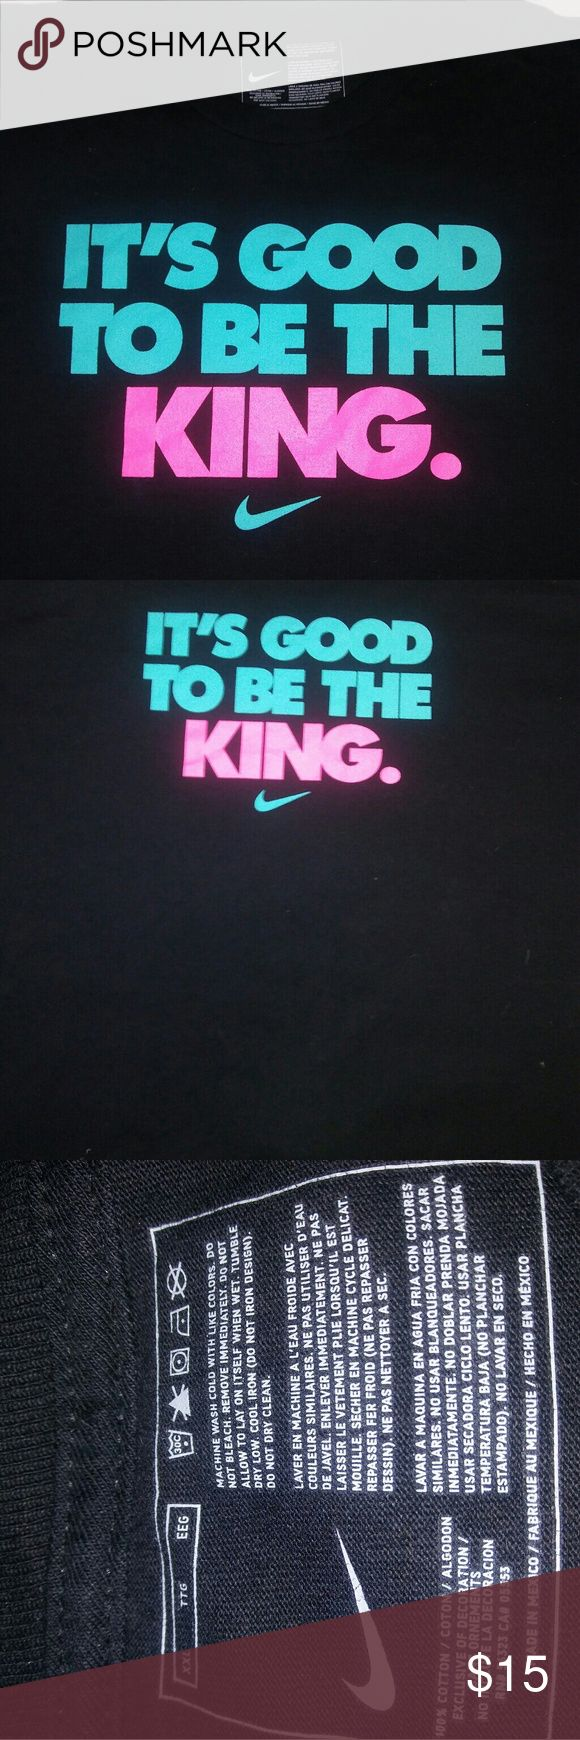 Nike short sleeve t-shirt it's good to be the king Double XL men's black T-shirt Nike .turquoise and coral color lettering says it's good to be the king .brand new without the tags 36 in in length 25 across Nike Shirts Tees - Short Sleeve